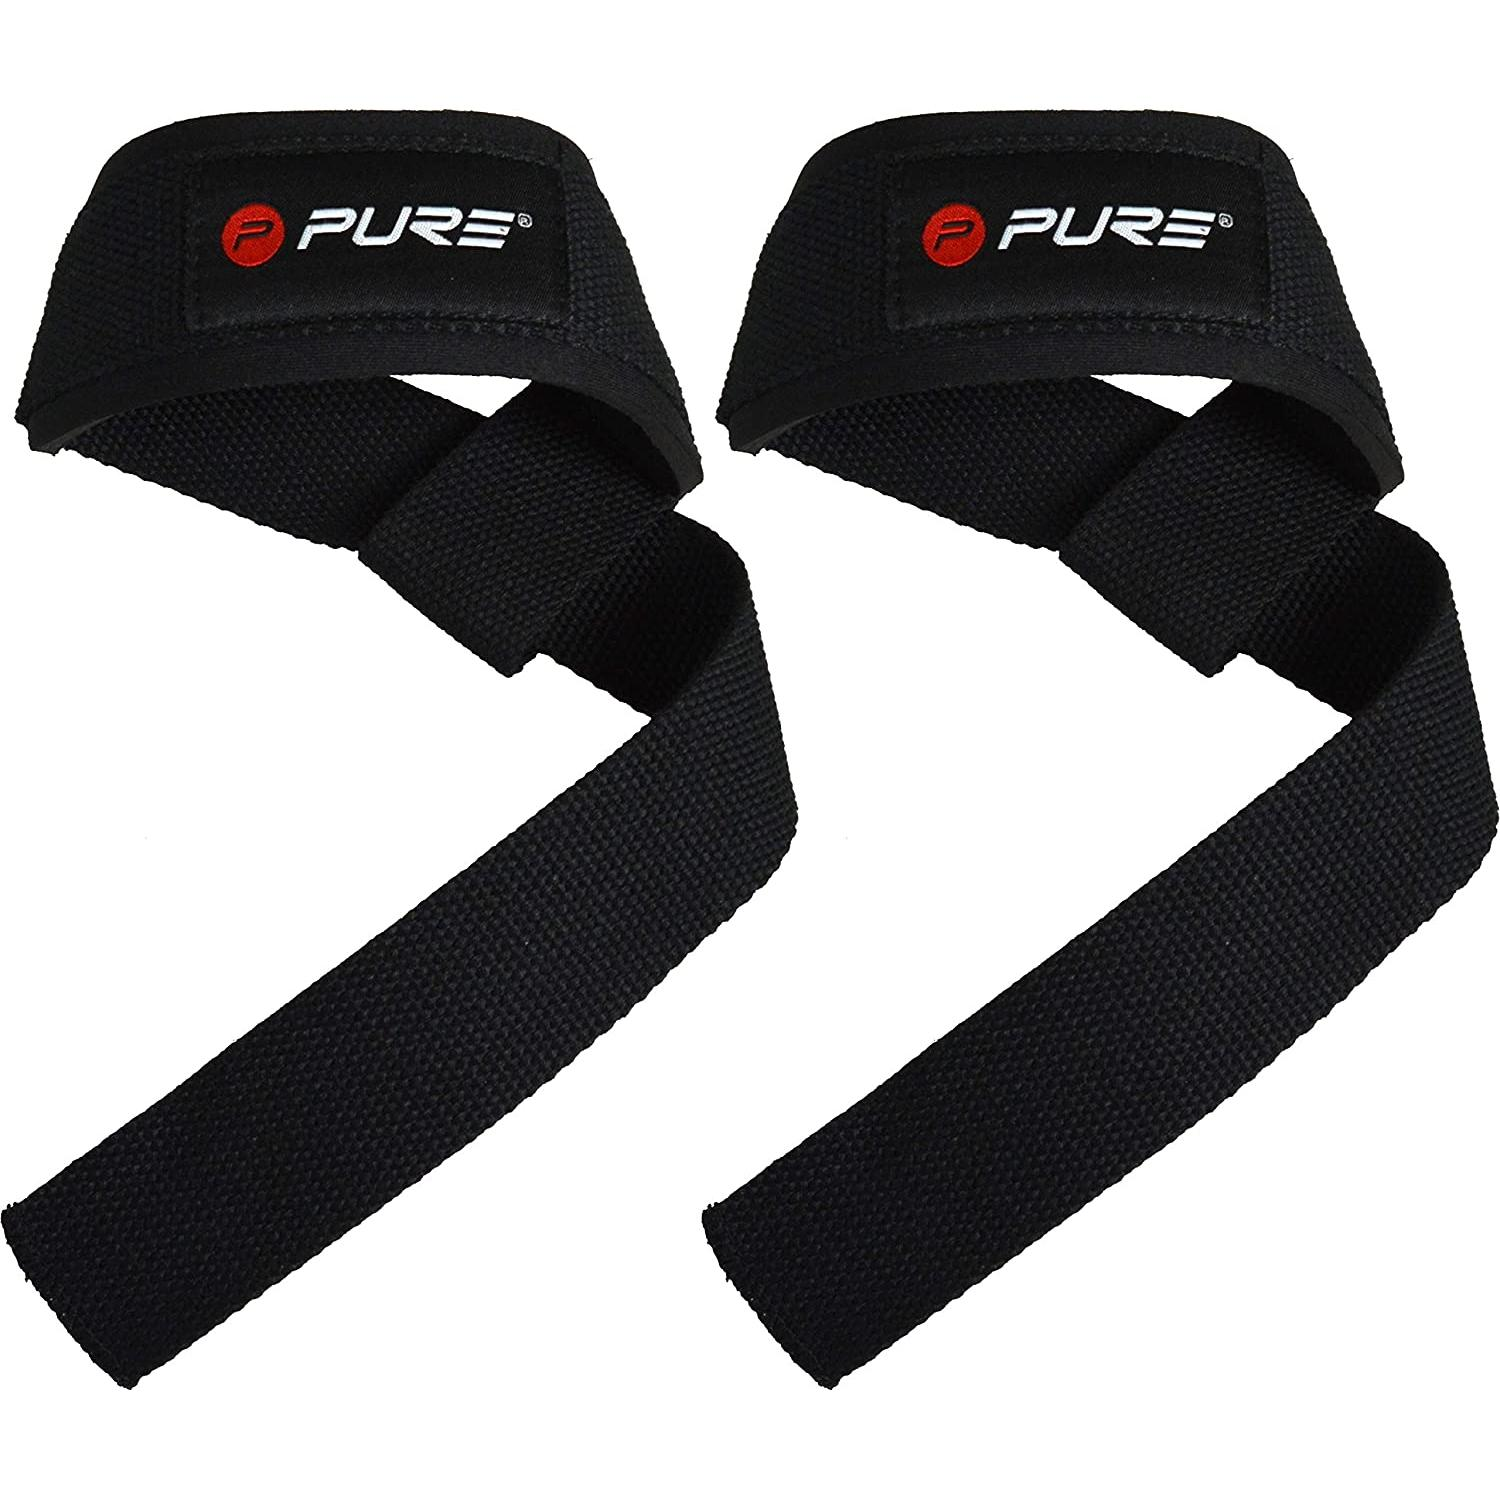 Pure 2 Improve Weight Lifting Straps svarcelšanas saites